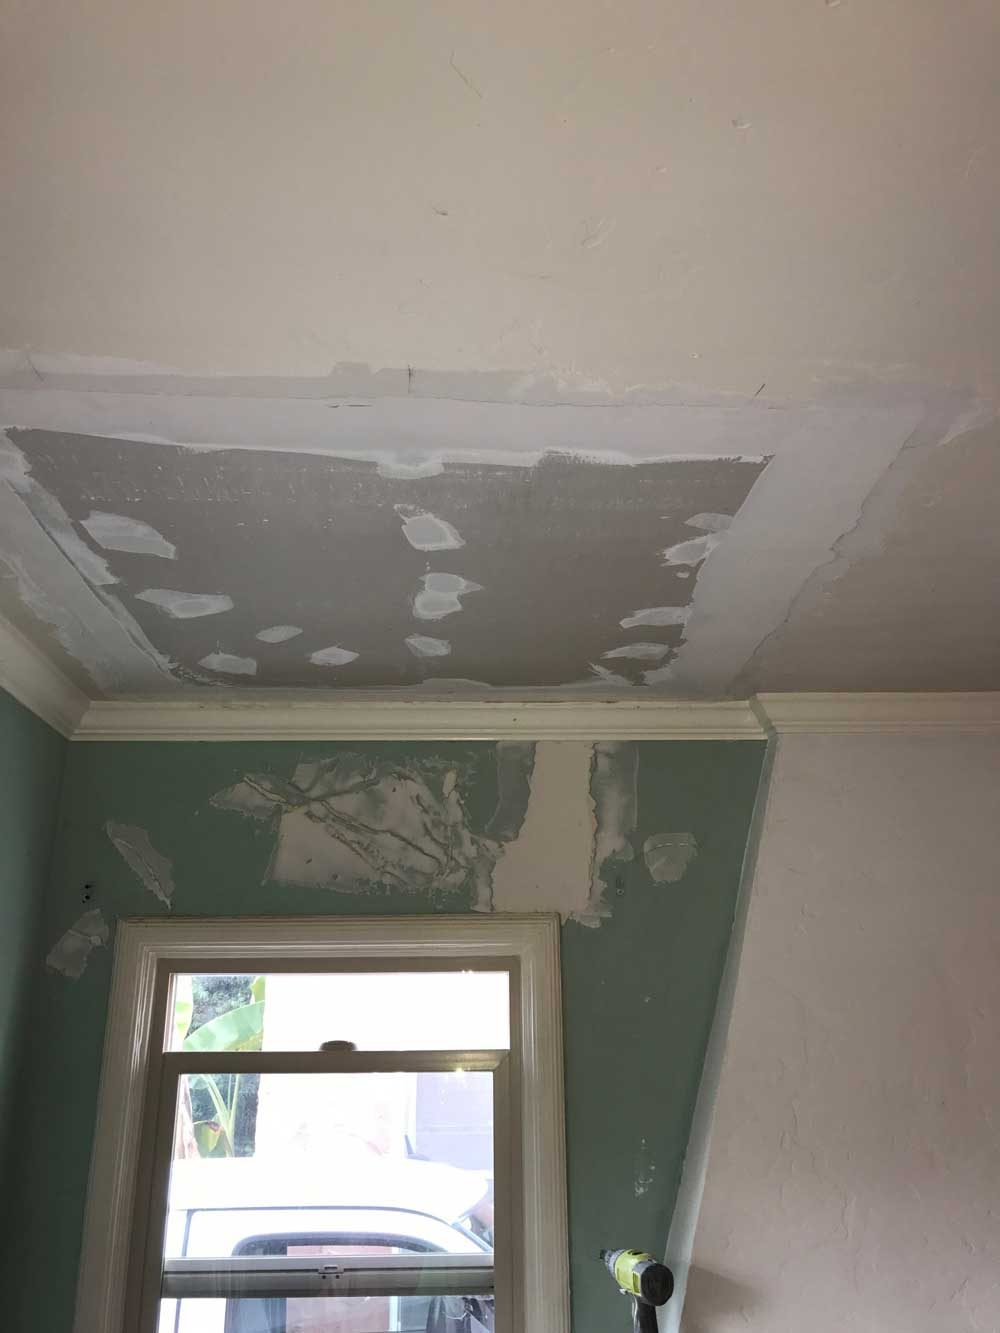 Drywall Water Damage | Professional Drywall Services located